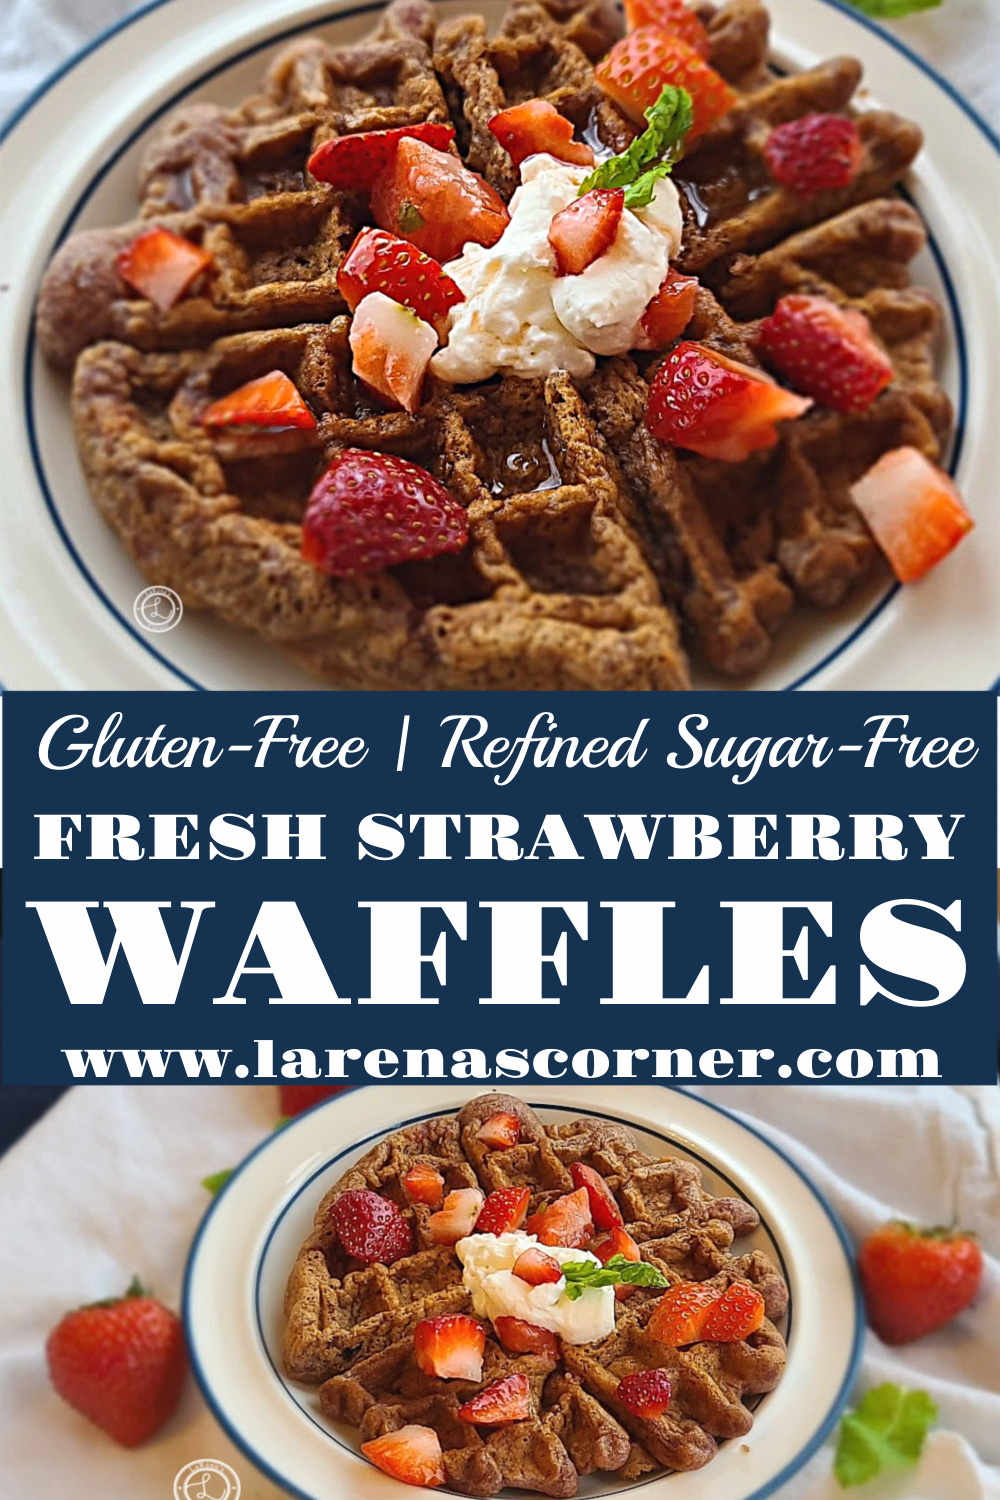 Gluten-Free Fresh Strawberry Waffles. 2 Pictures one closeup and one a little farther away.